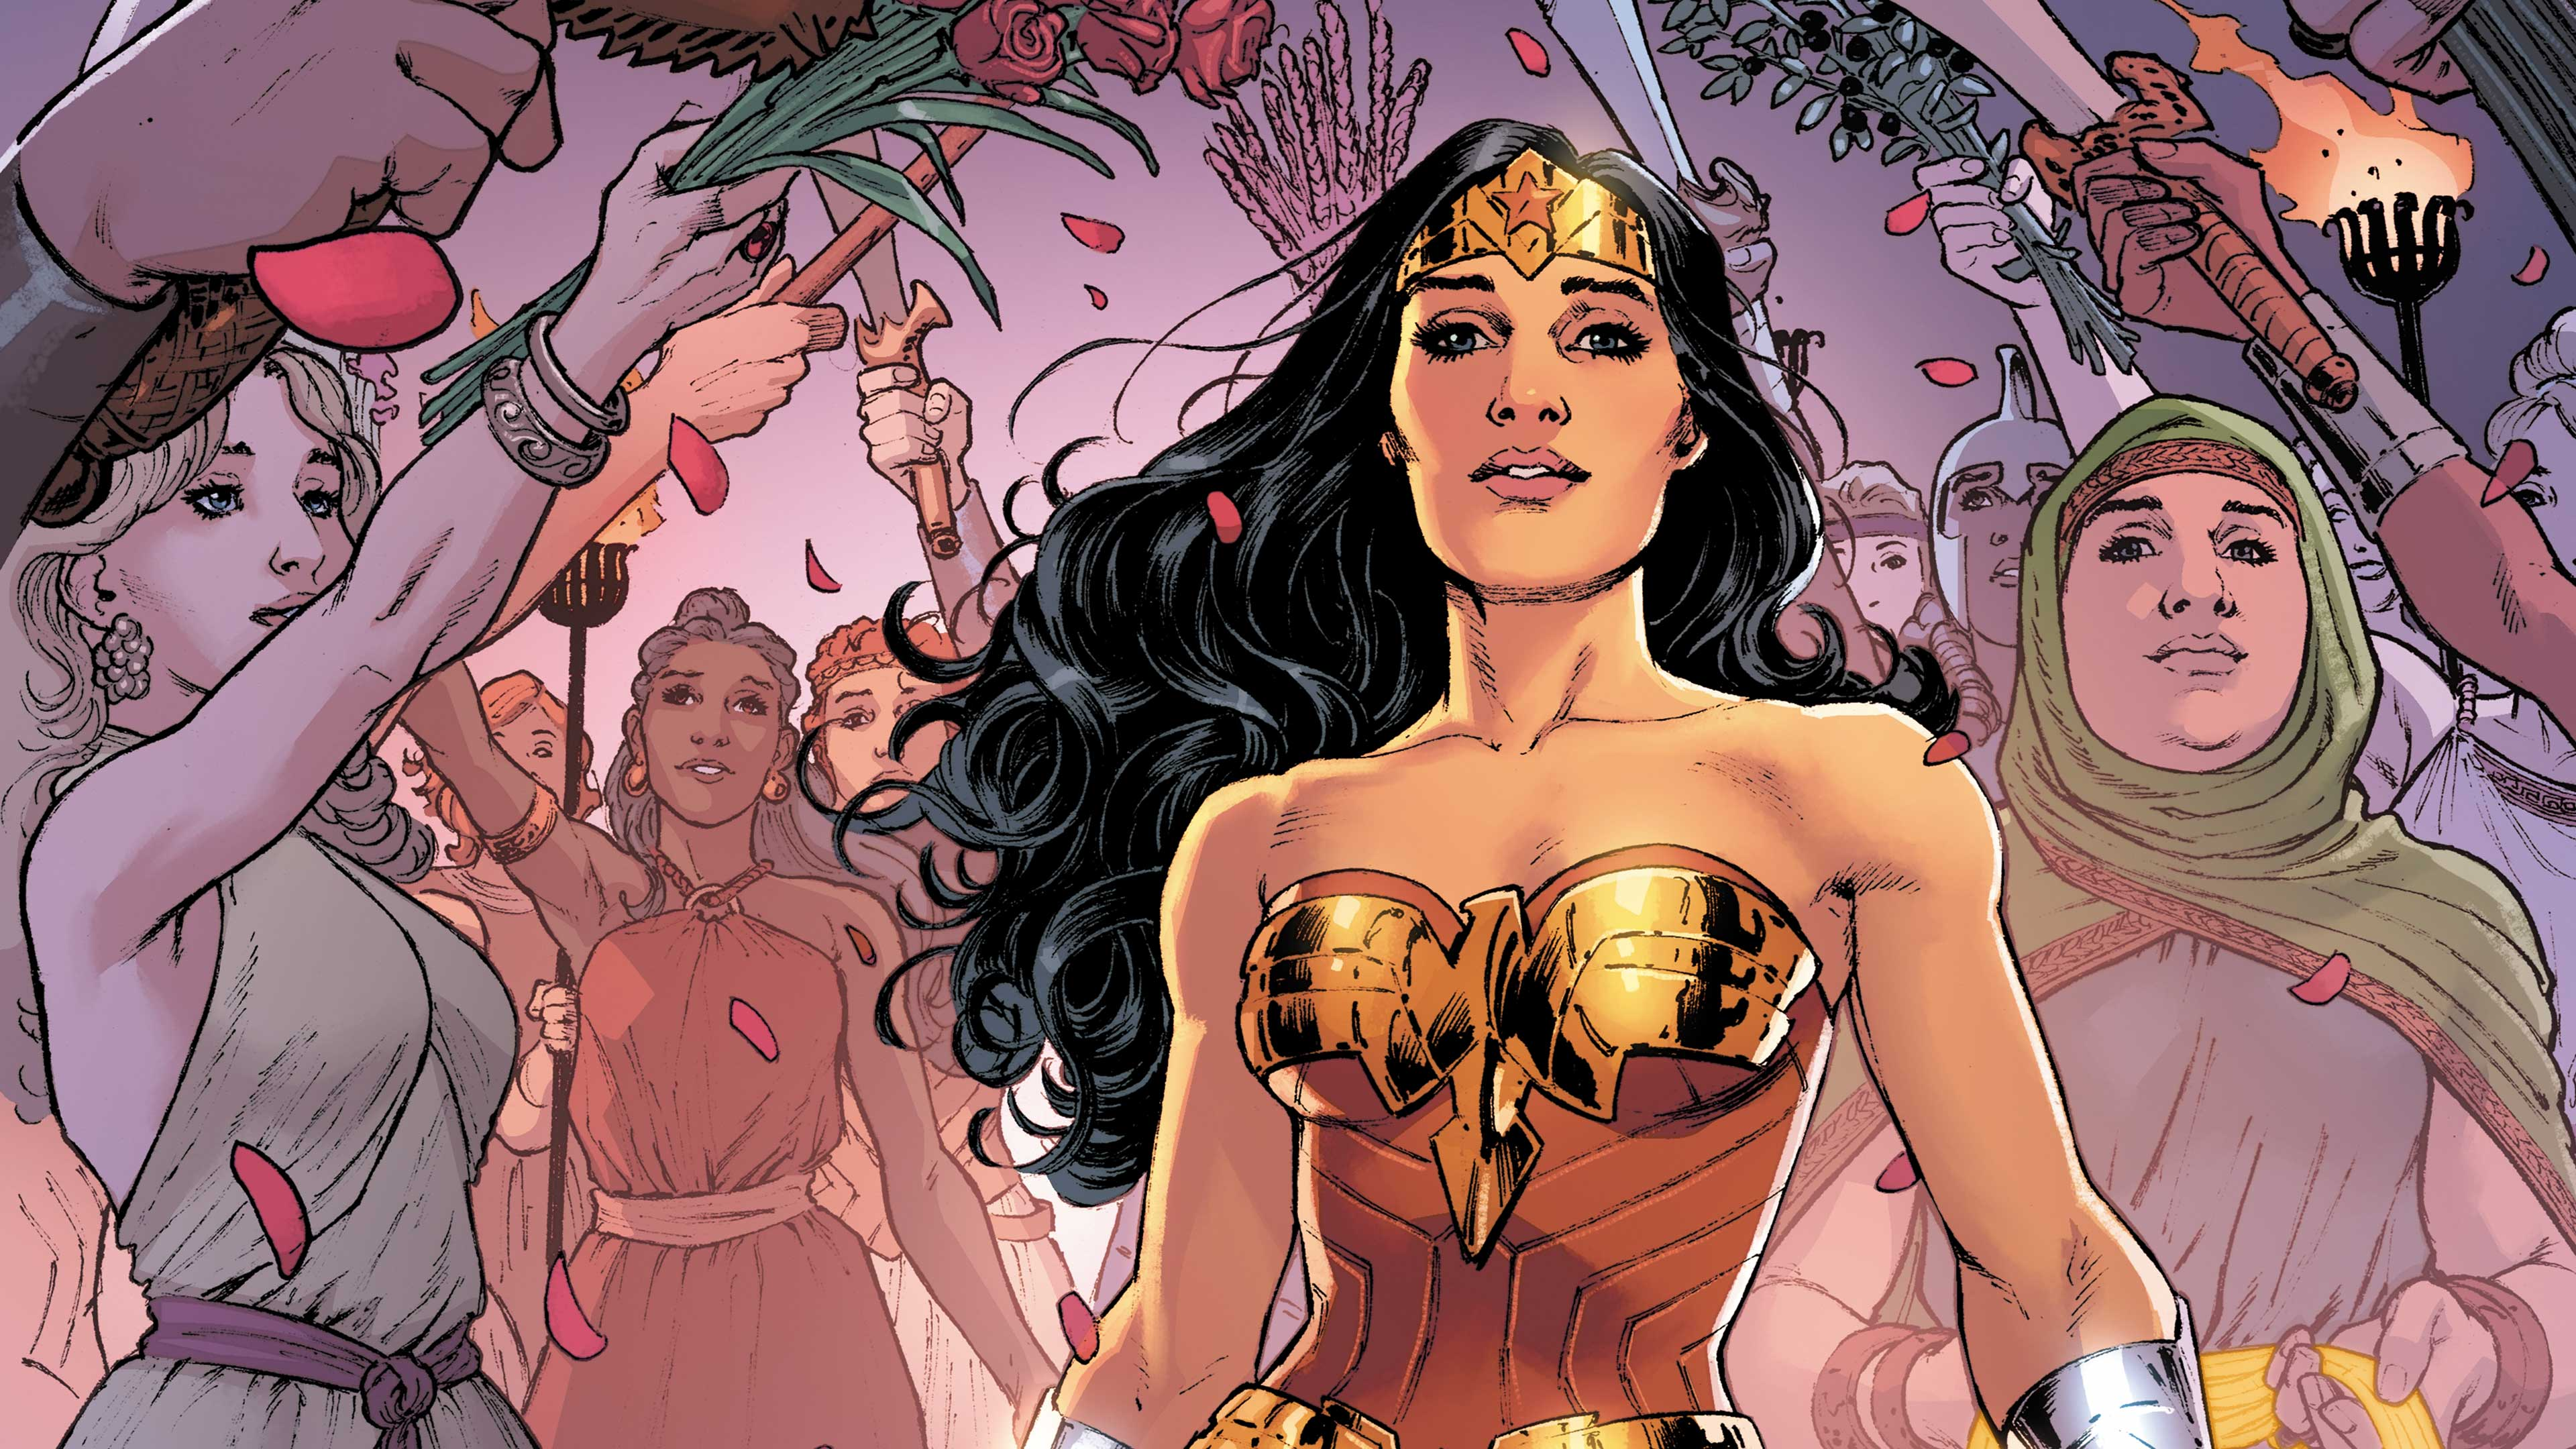 yearone-wonderwoman-news-hero-10910-v1.jpg